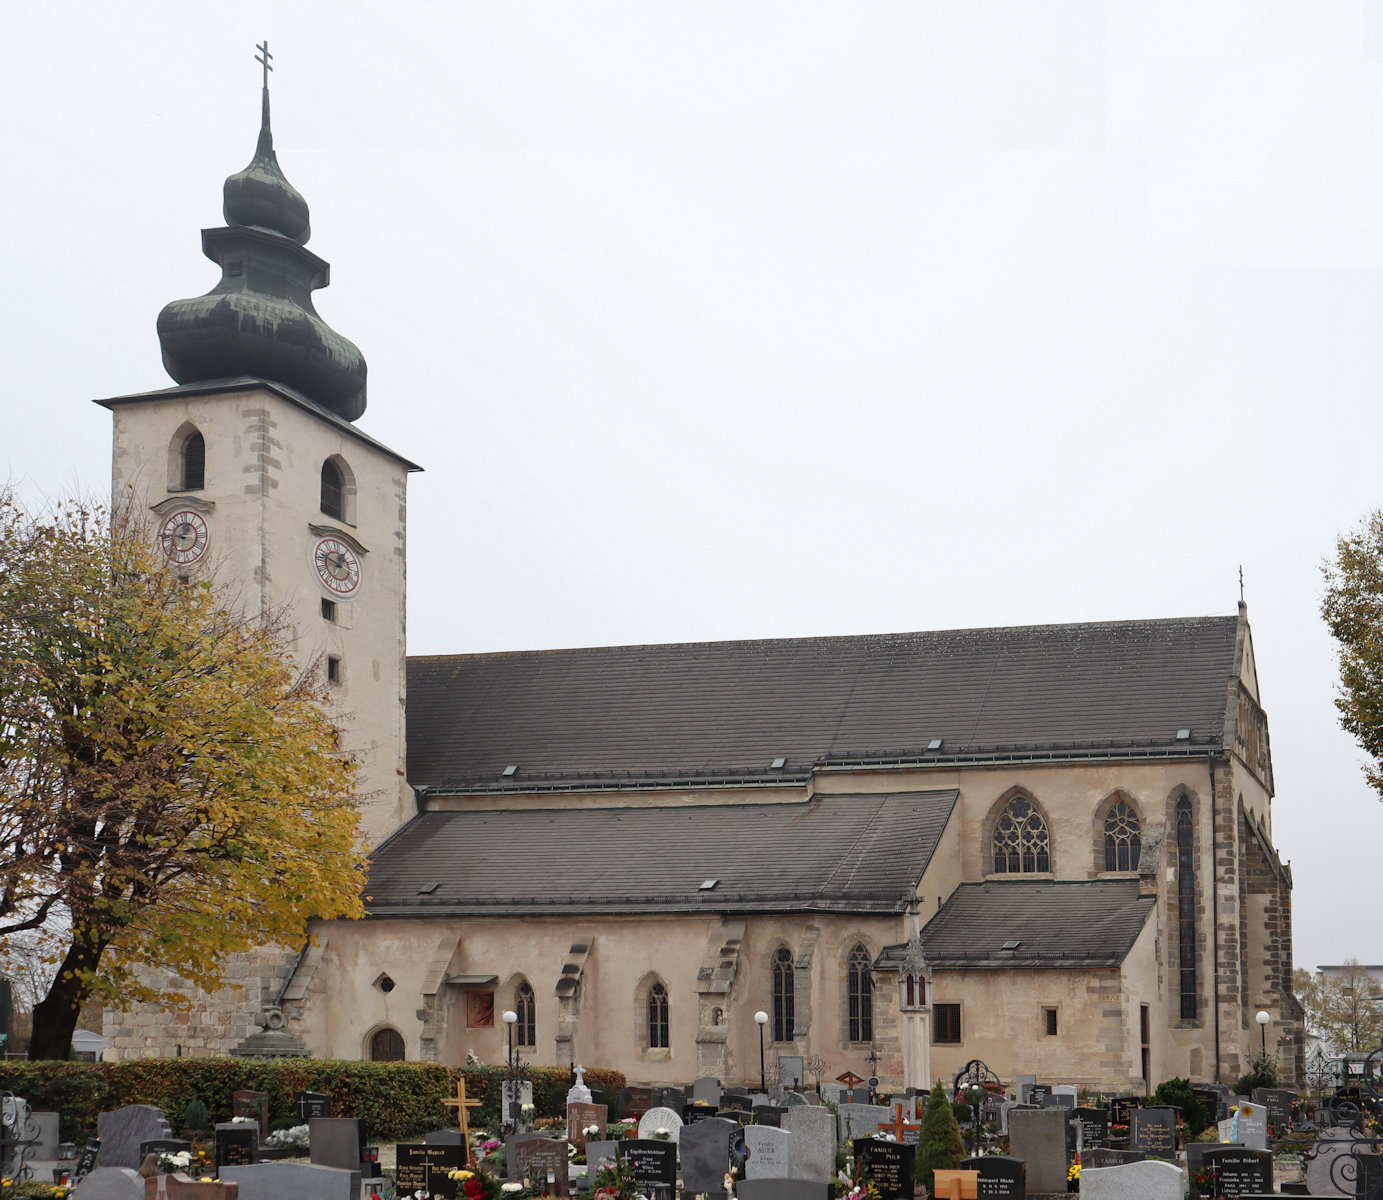 St.-Laurenz-Basilika in Enns-Lorch